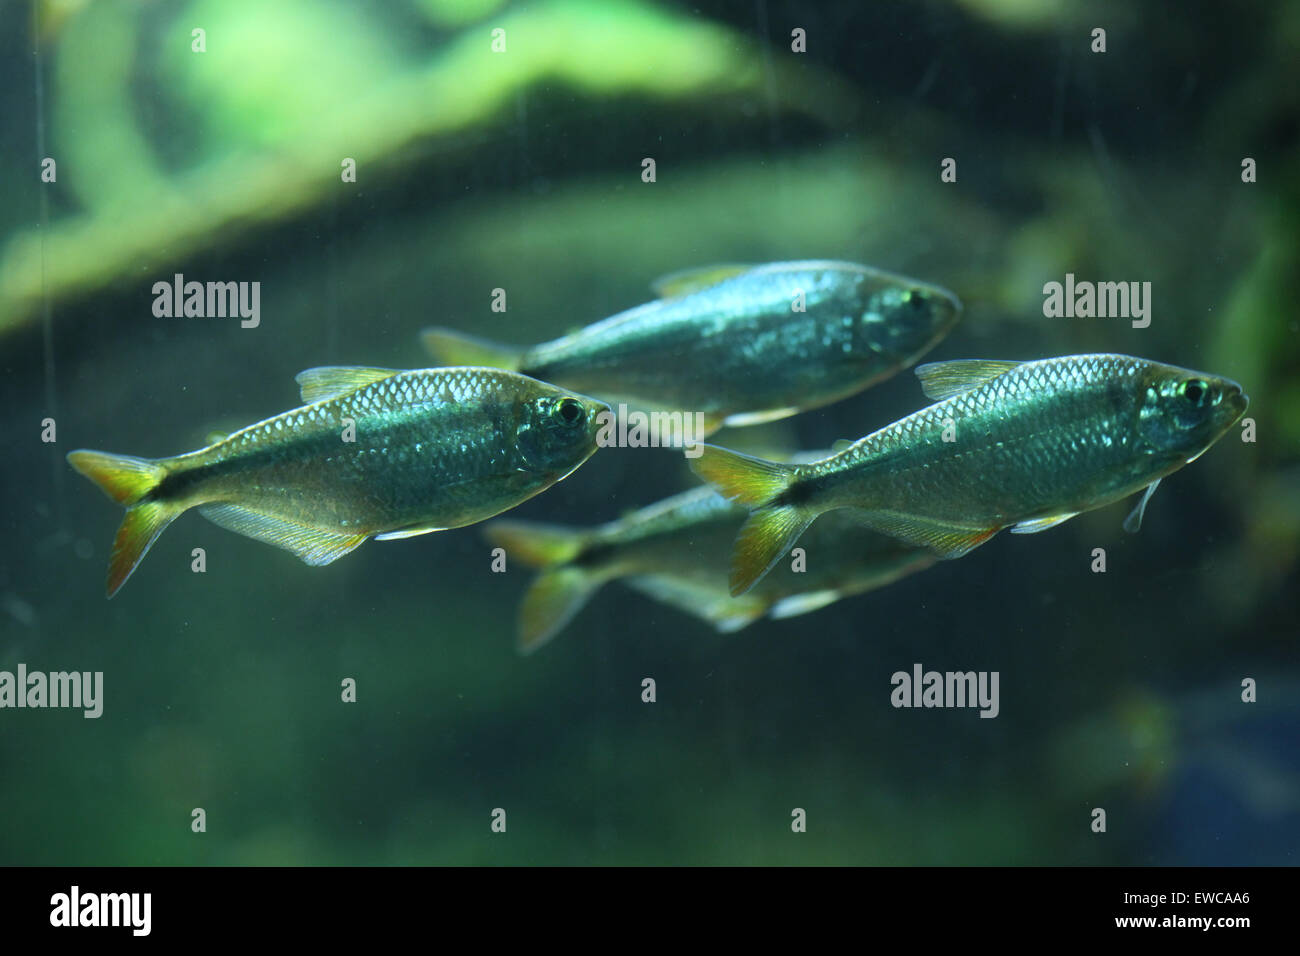 Mexican tetra (Astyanax mexicanus), also known as the blind cave fish at Frankfurt Zoo in Frankfurt am Main, Hesse, - Stock Image